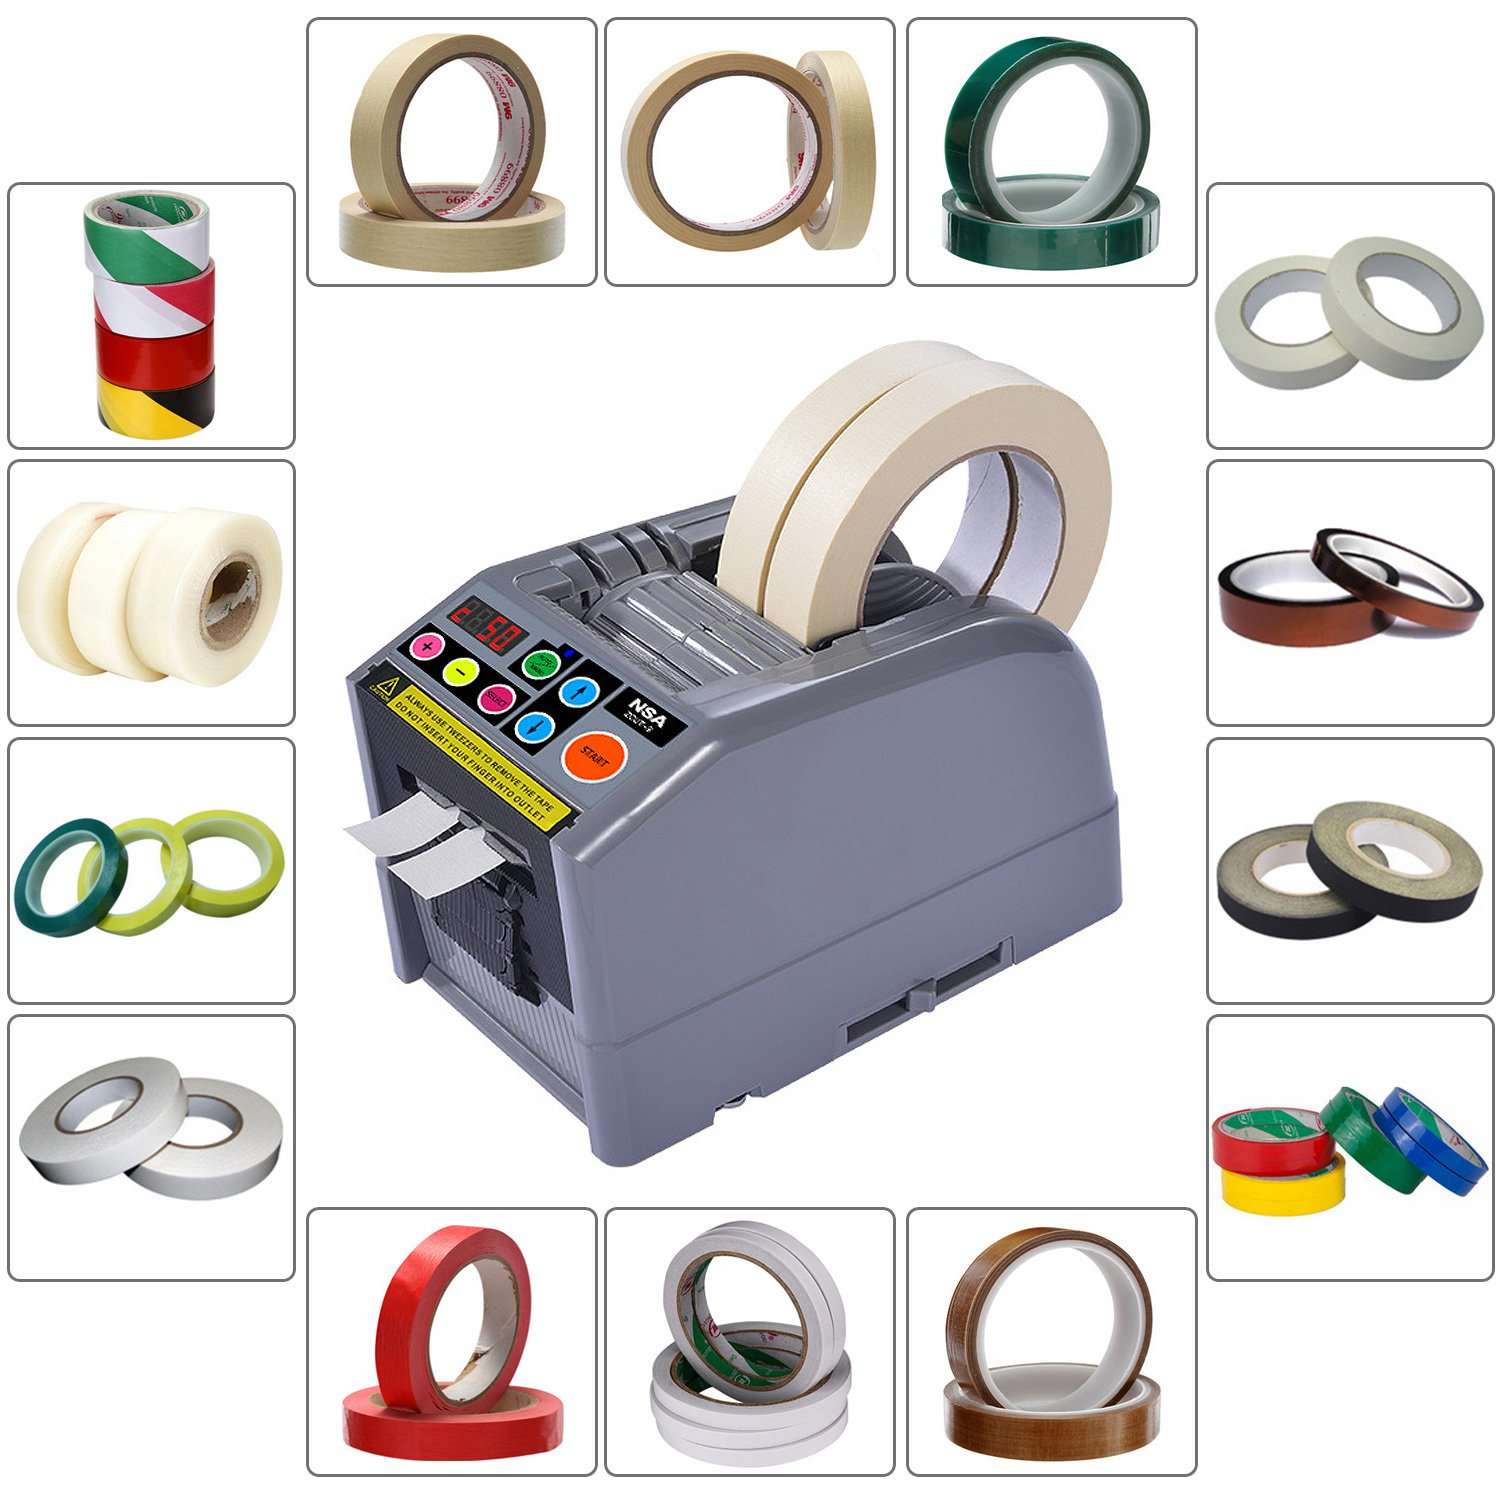 ZCUT-9 Electric Auto Definite Length Tape Dispenser Up To 39 Inch length Tape and Suit for Many Kinds Tape Cutting